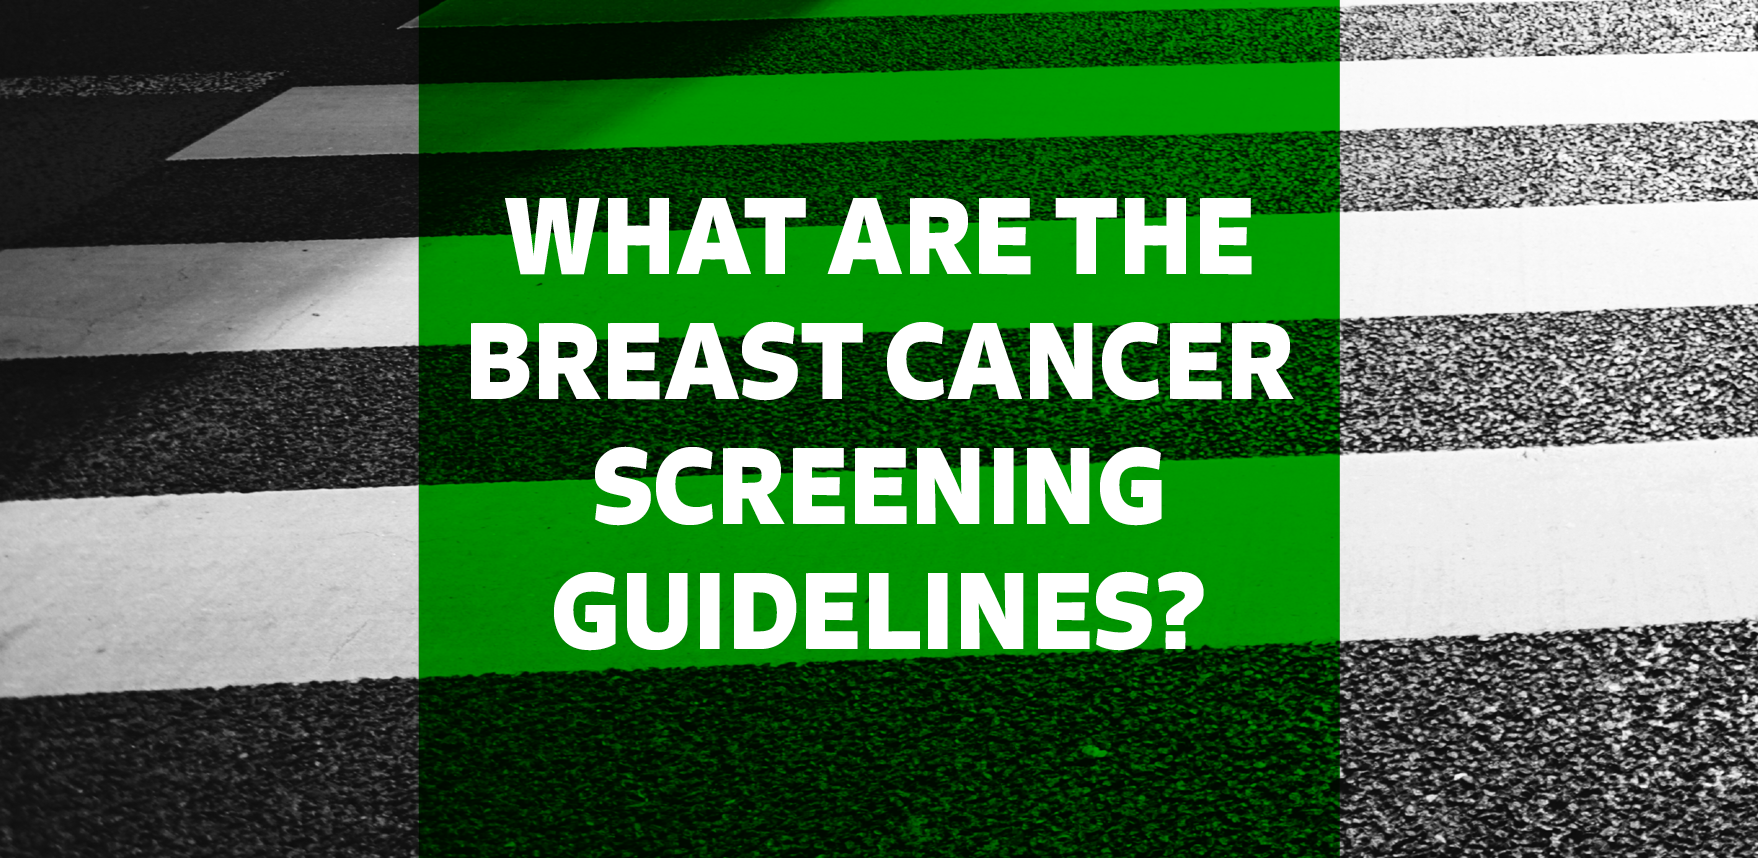 Breast Cancer Screening Guidelines.png